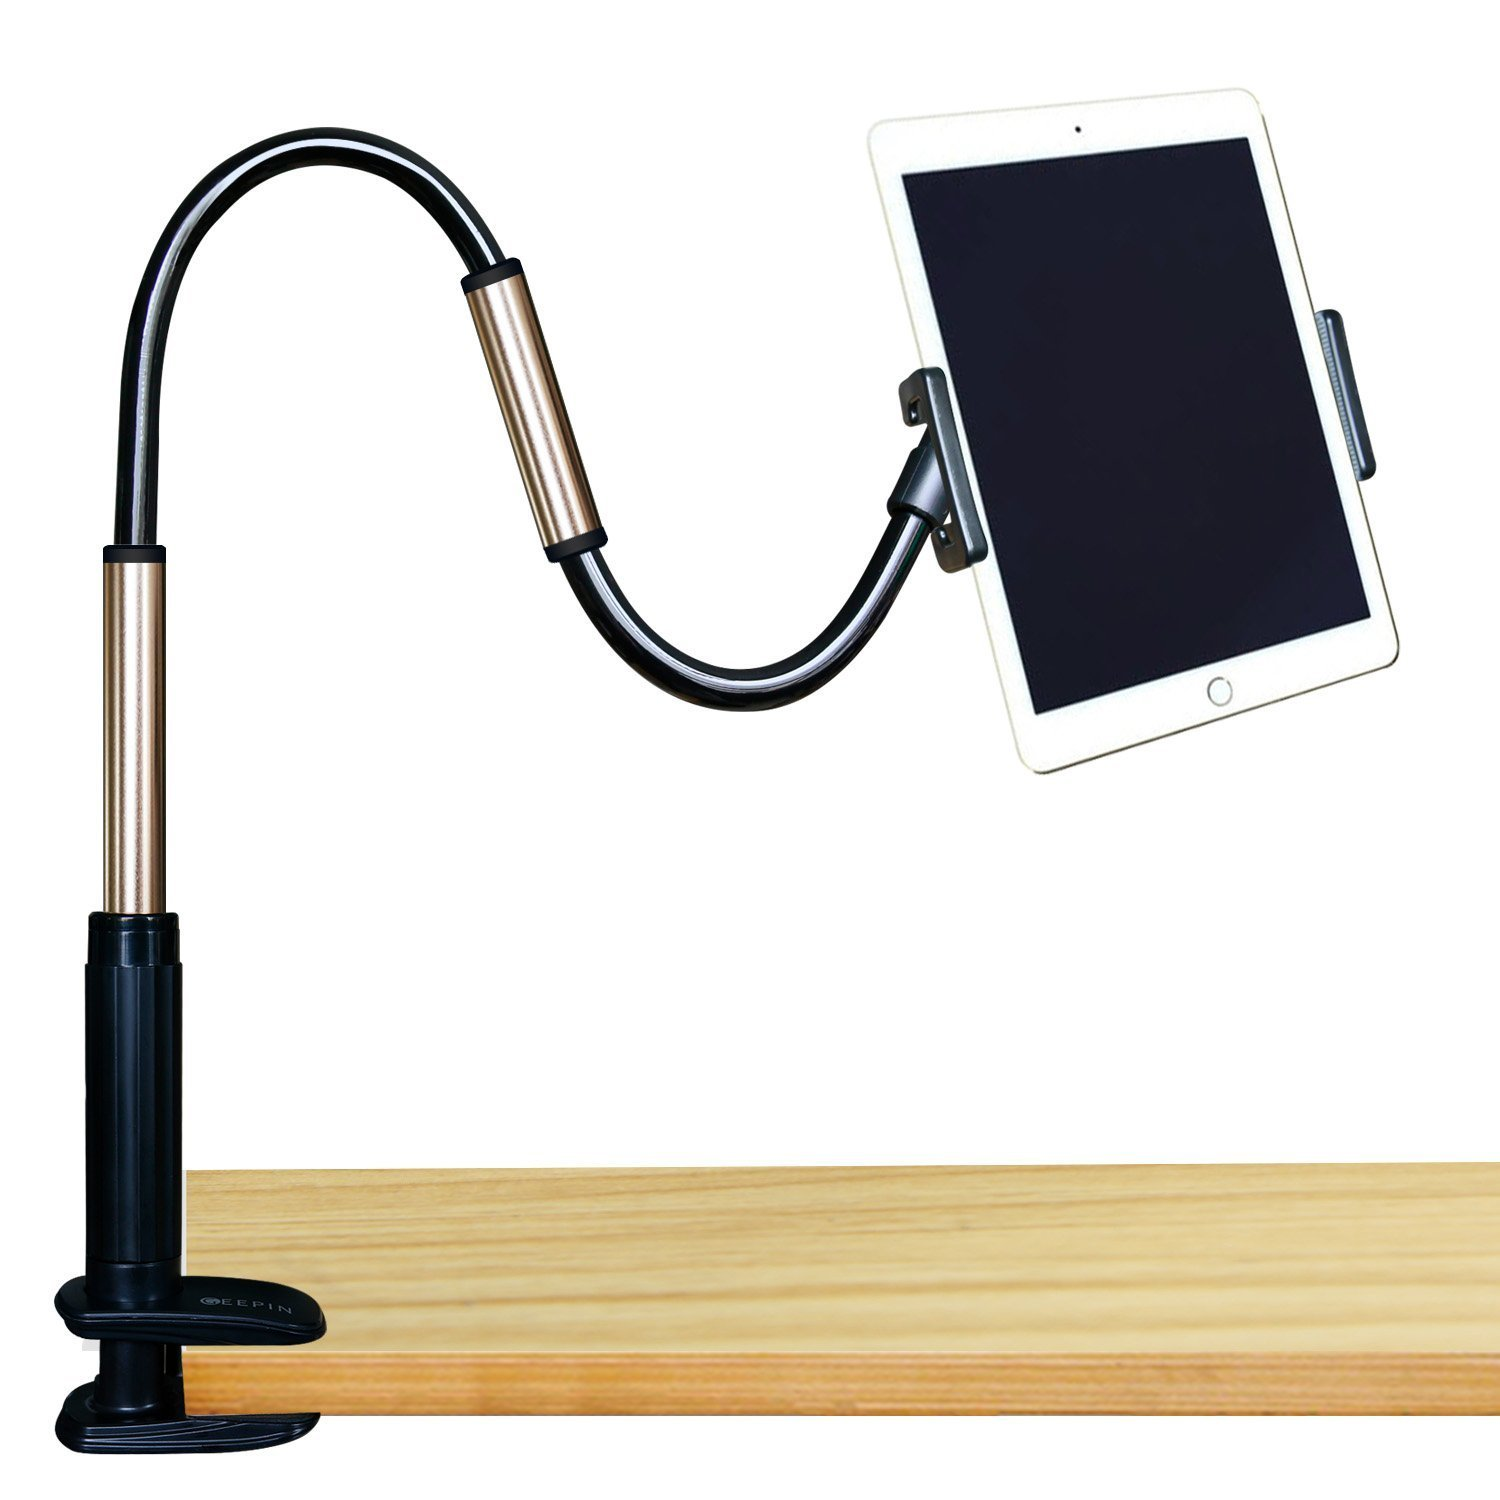 GEEPIN Clamp Mount Tablet Stand iPad iPhone, 3.3 Ft Tall Adjustable Arm 360° Rotating Aluminum Gooseneck Swivel Universal Lazy Holder Bed Office.